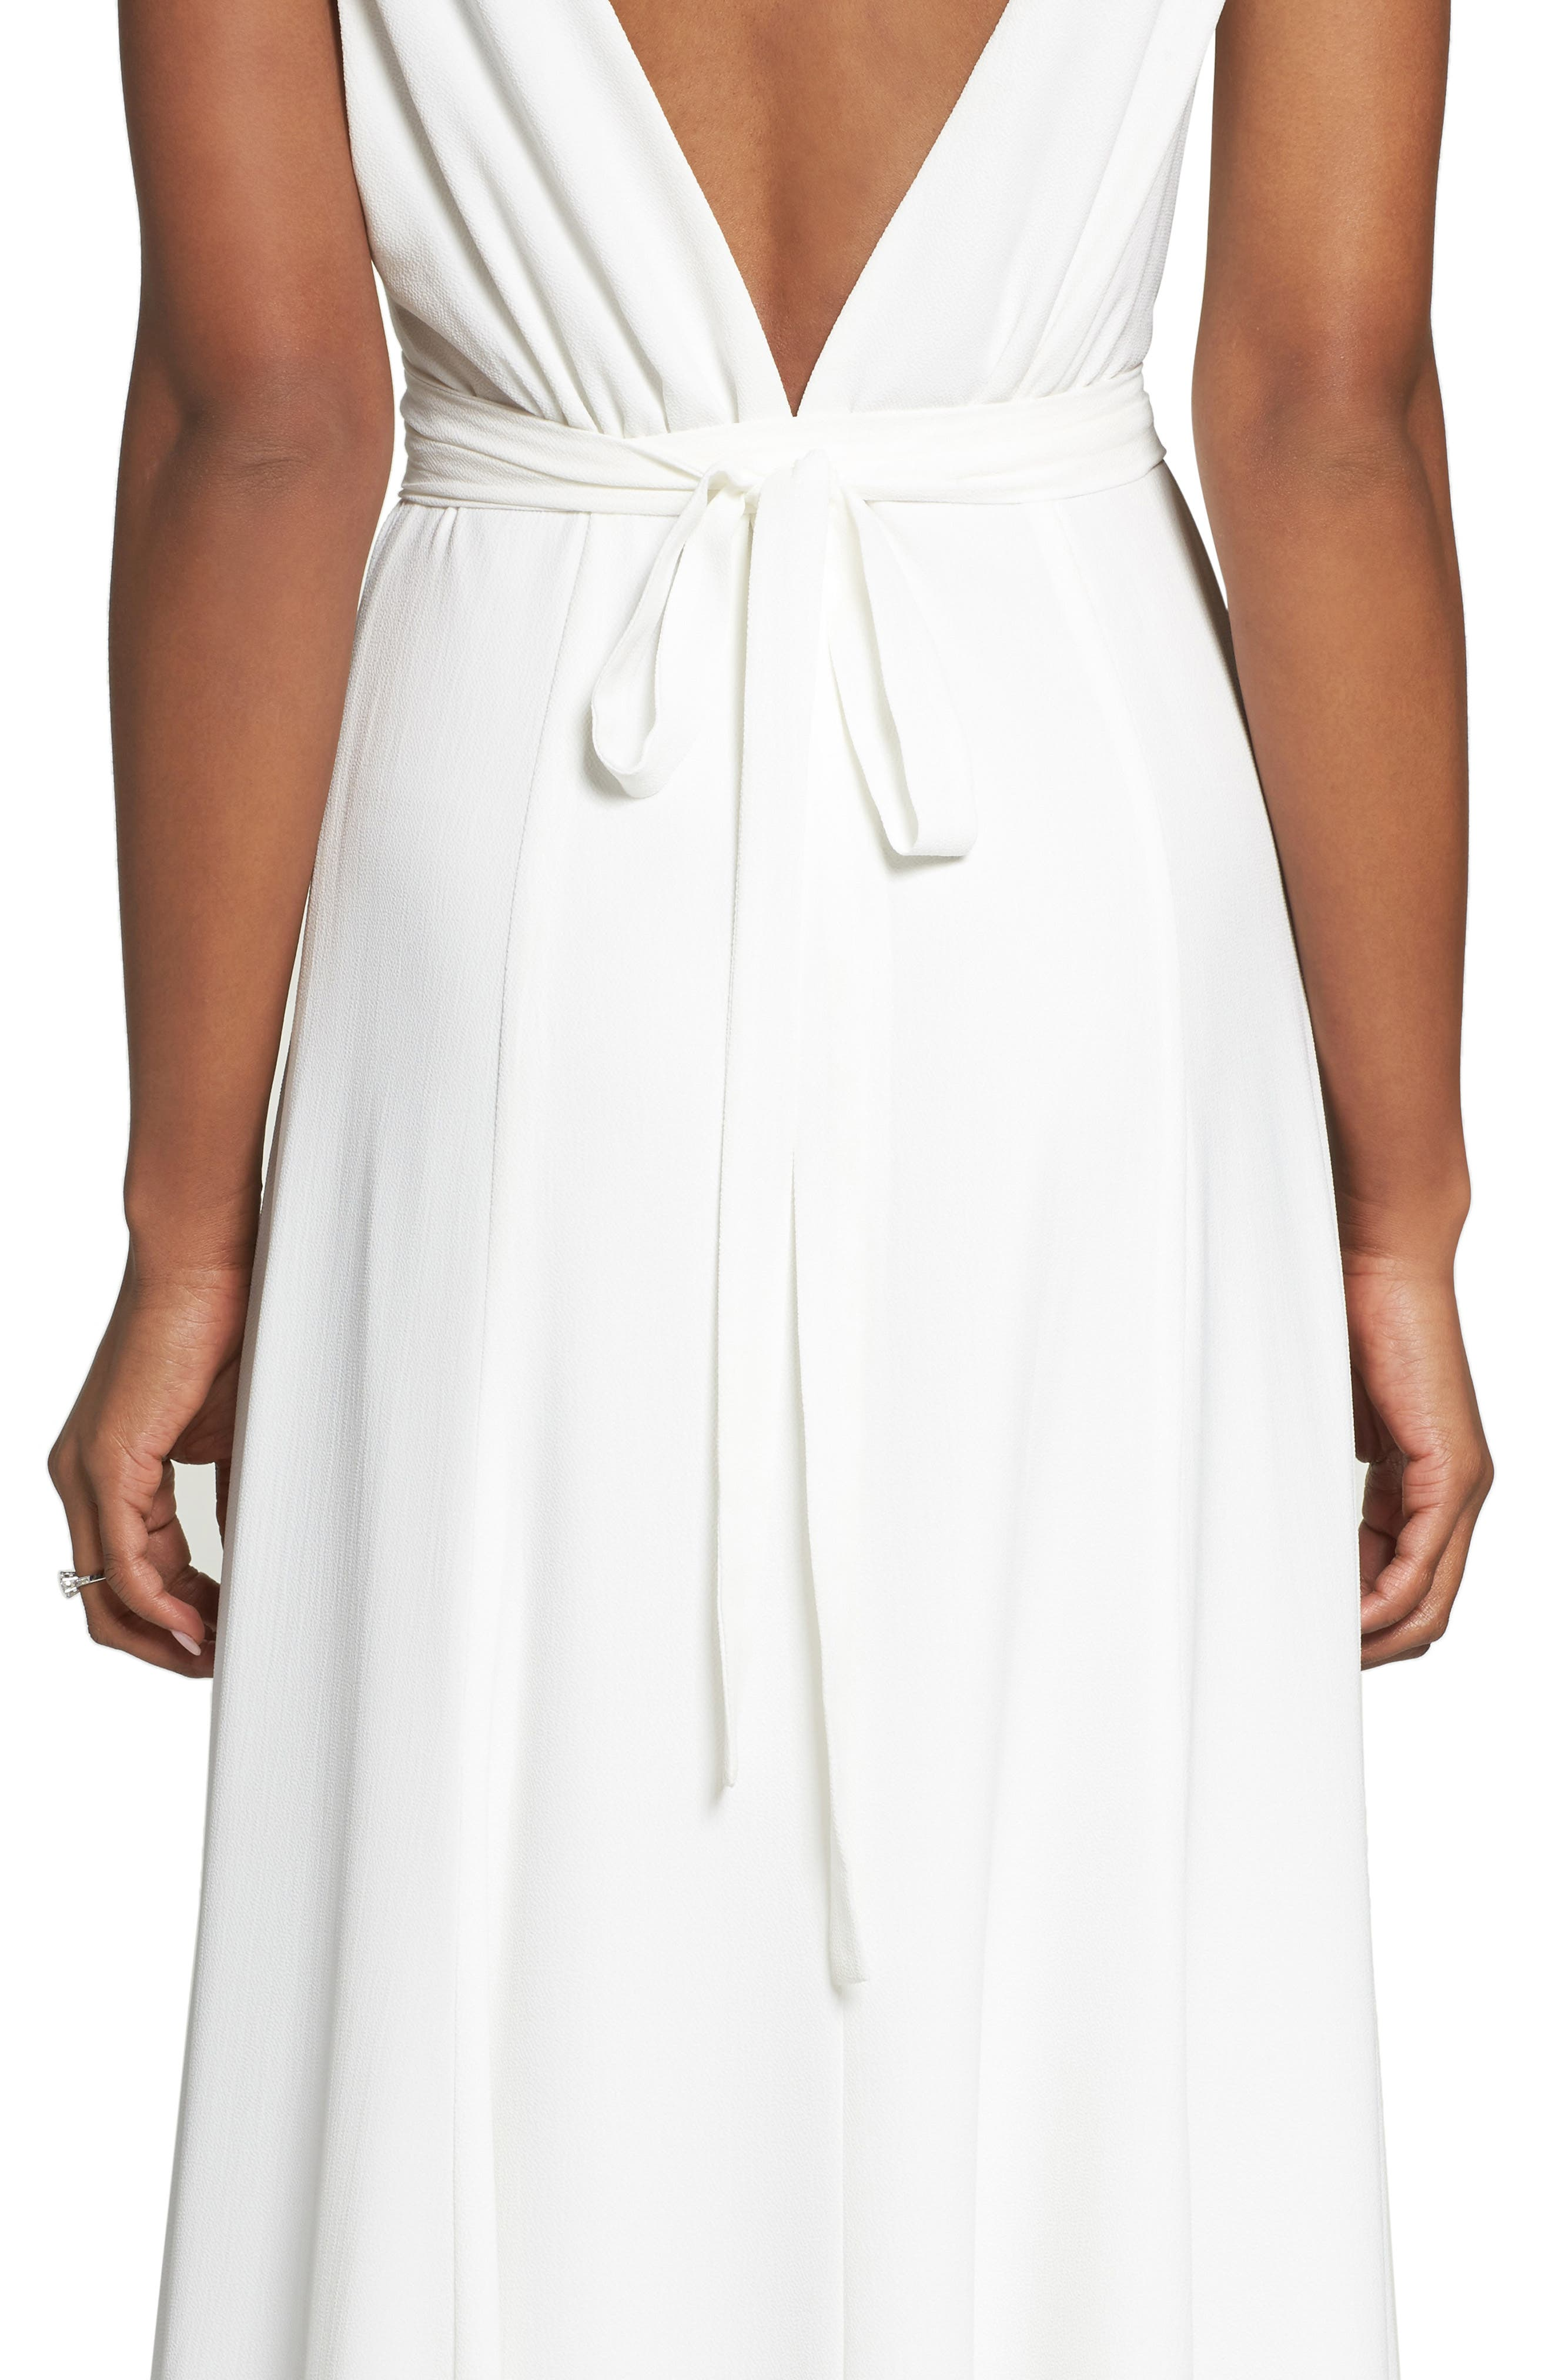 JOANNA AUGUST, Jagger Plunging Wrap Dress, Alternate thumbnail 4, color, WHITE